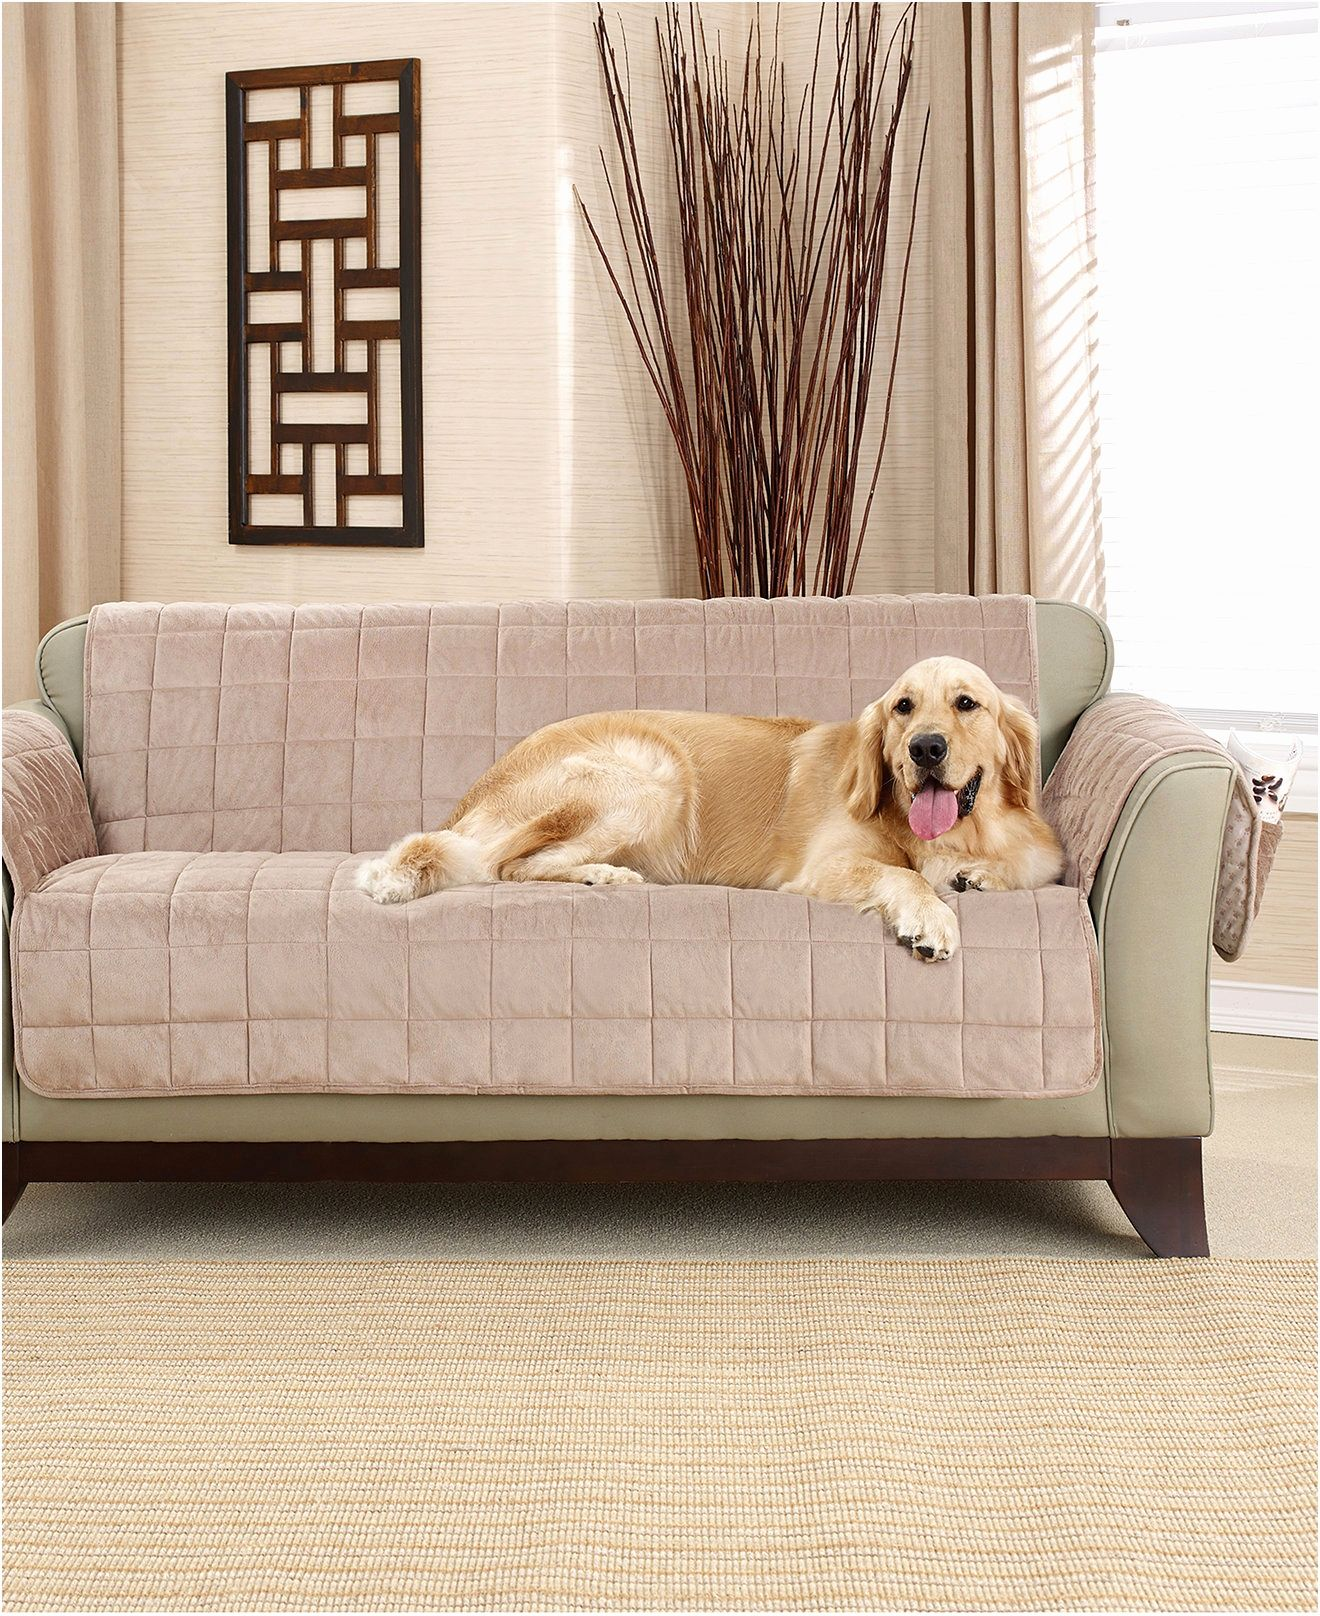 Beautiful Macy S Sofa Covers Picture Macy S Sofa Covers Inspirational Sofa Pet Sofa Covers Lovely Pet Protection C Pet Sofa Cover Best Leather Sofa Sofa Covers